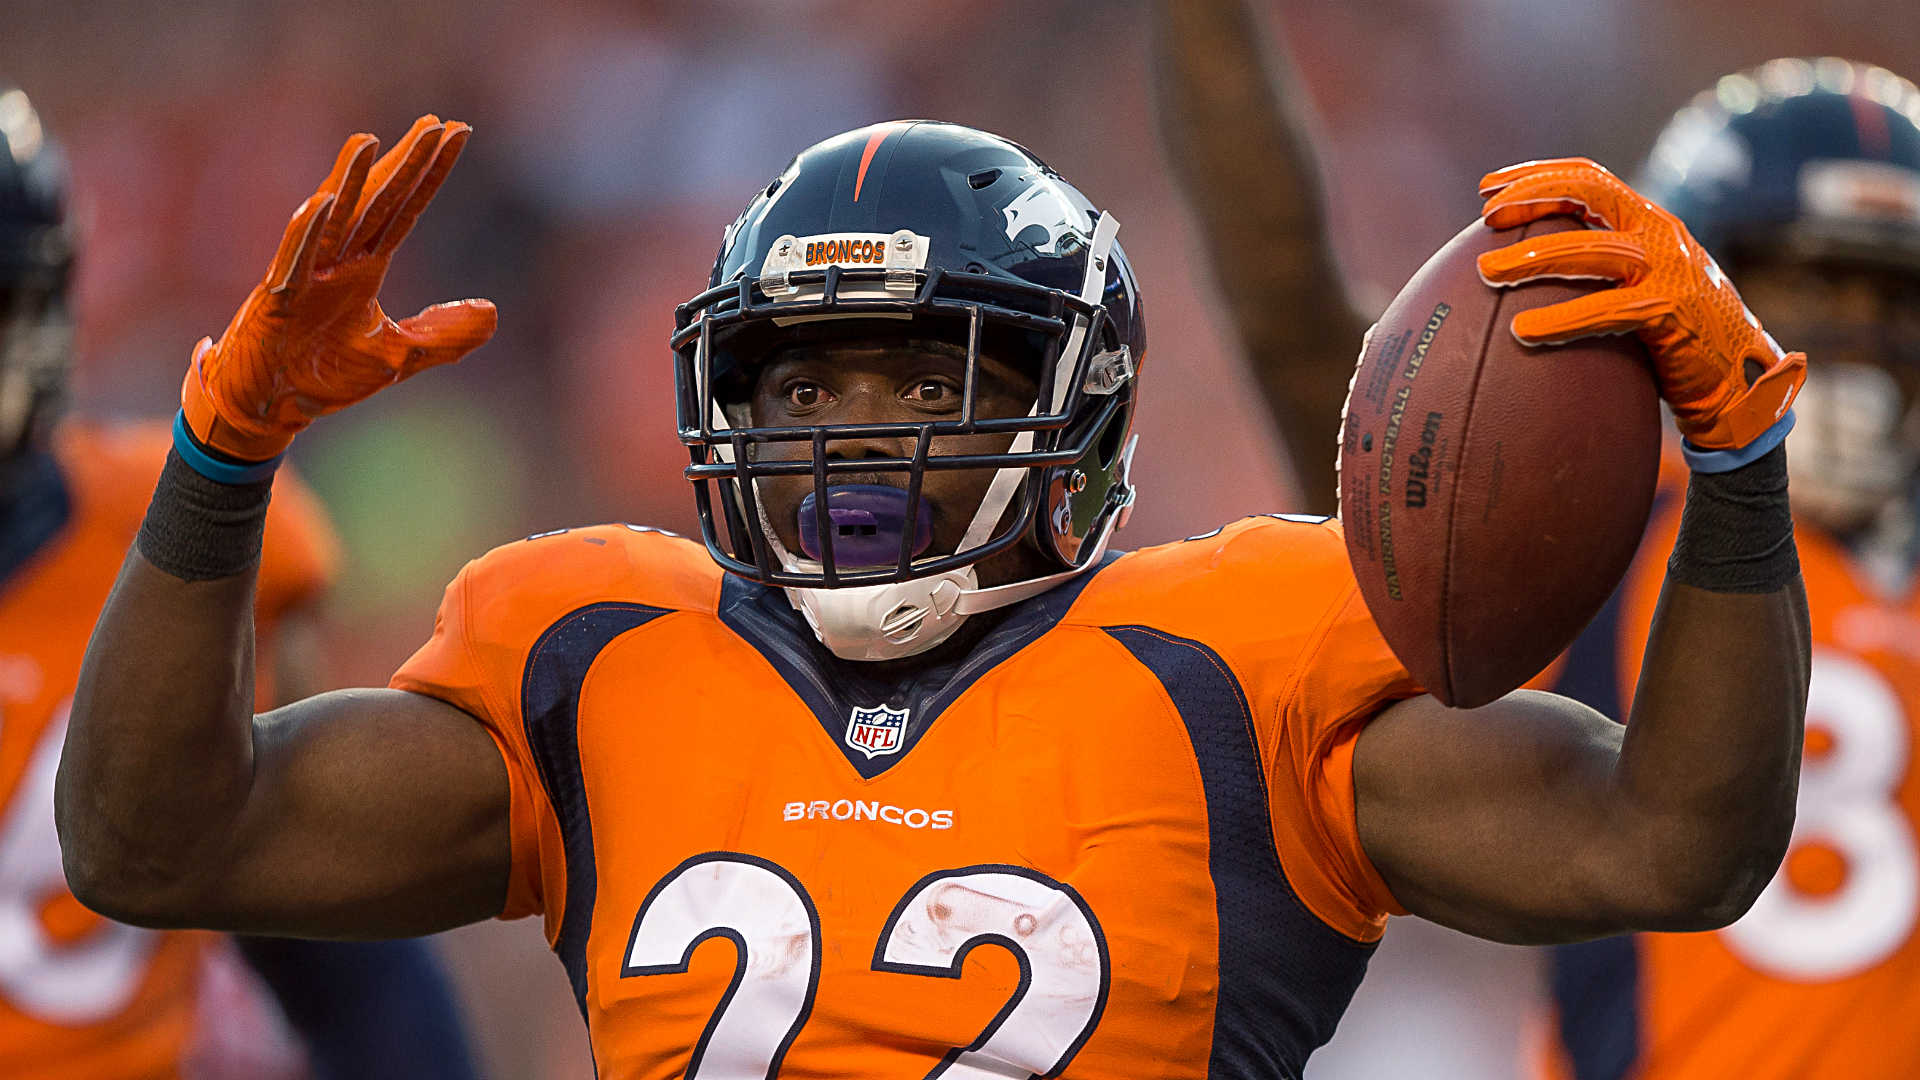 NFL free agent news: Panthers sign RB C.J. Anderson